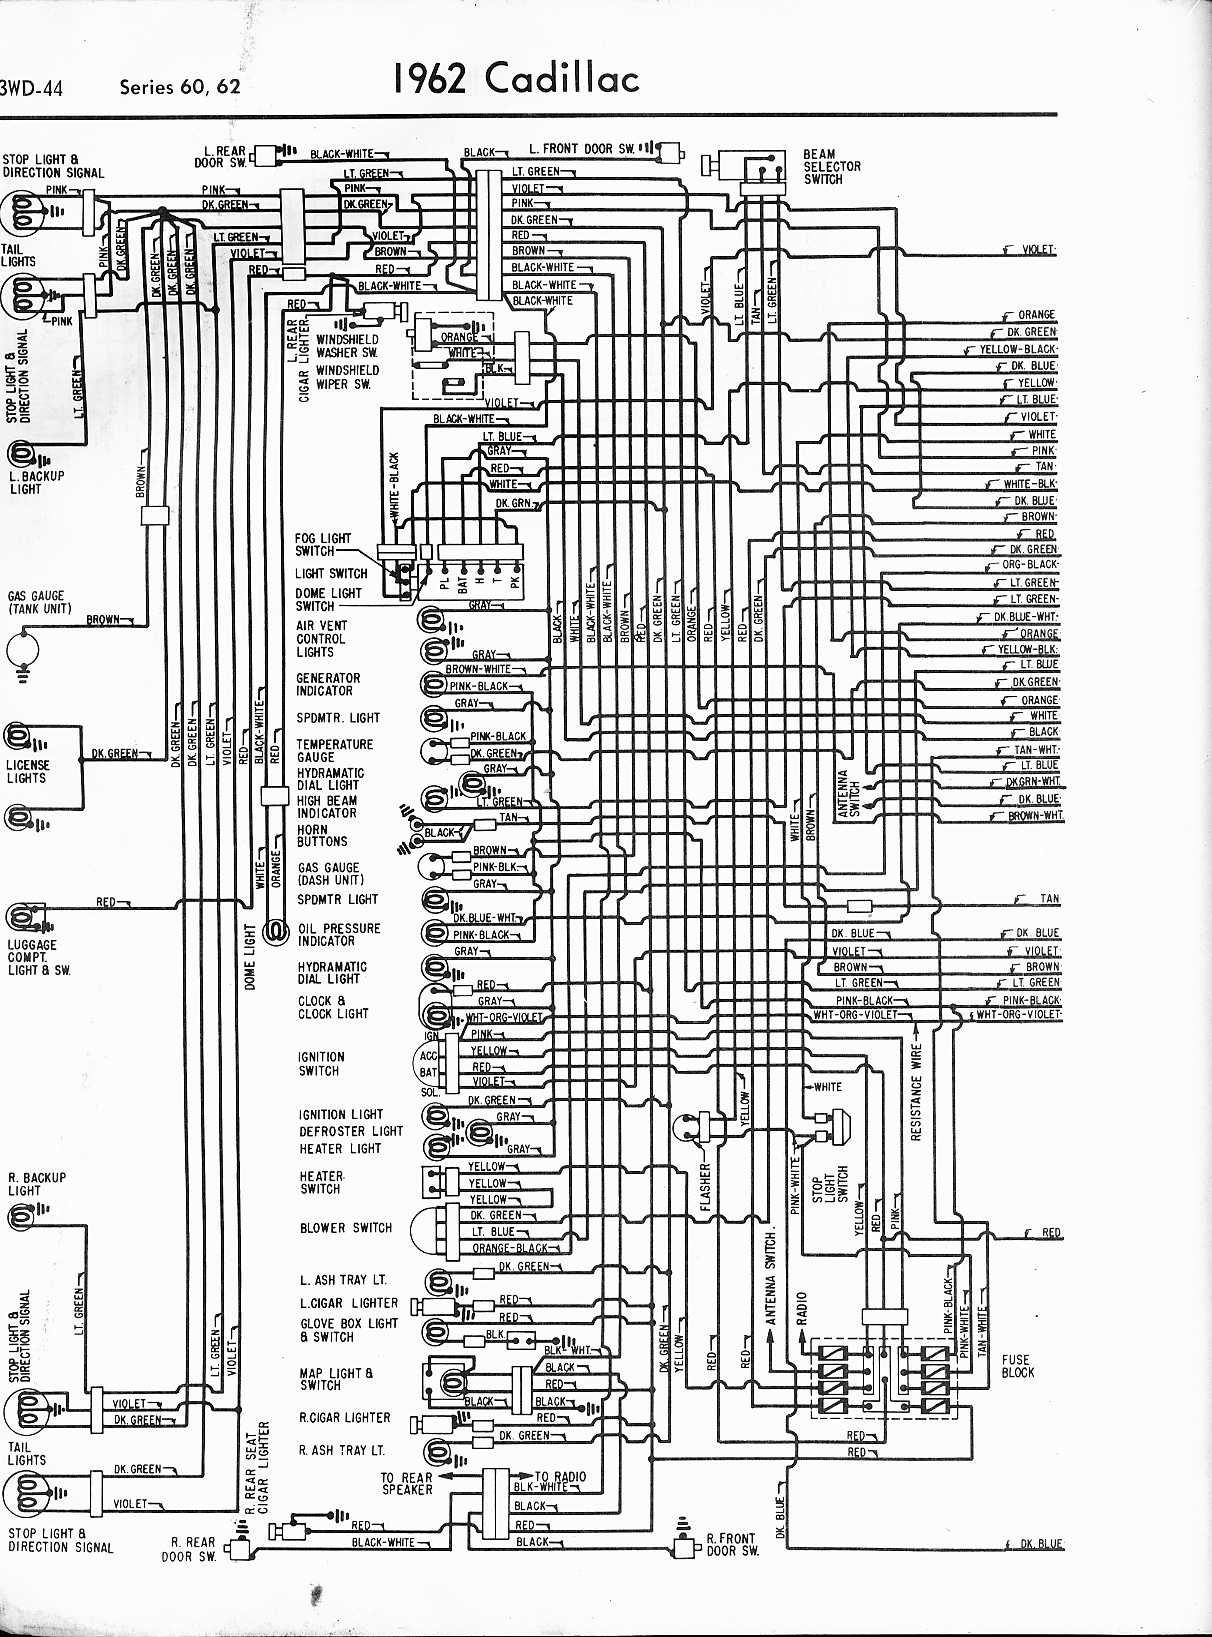 1955 cadillac vacuum diagram auto electrical wiring diagram u2022 rh 6weeks co uk